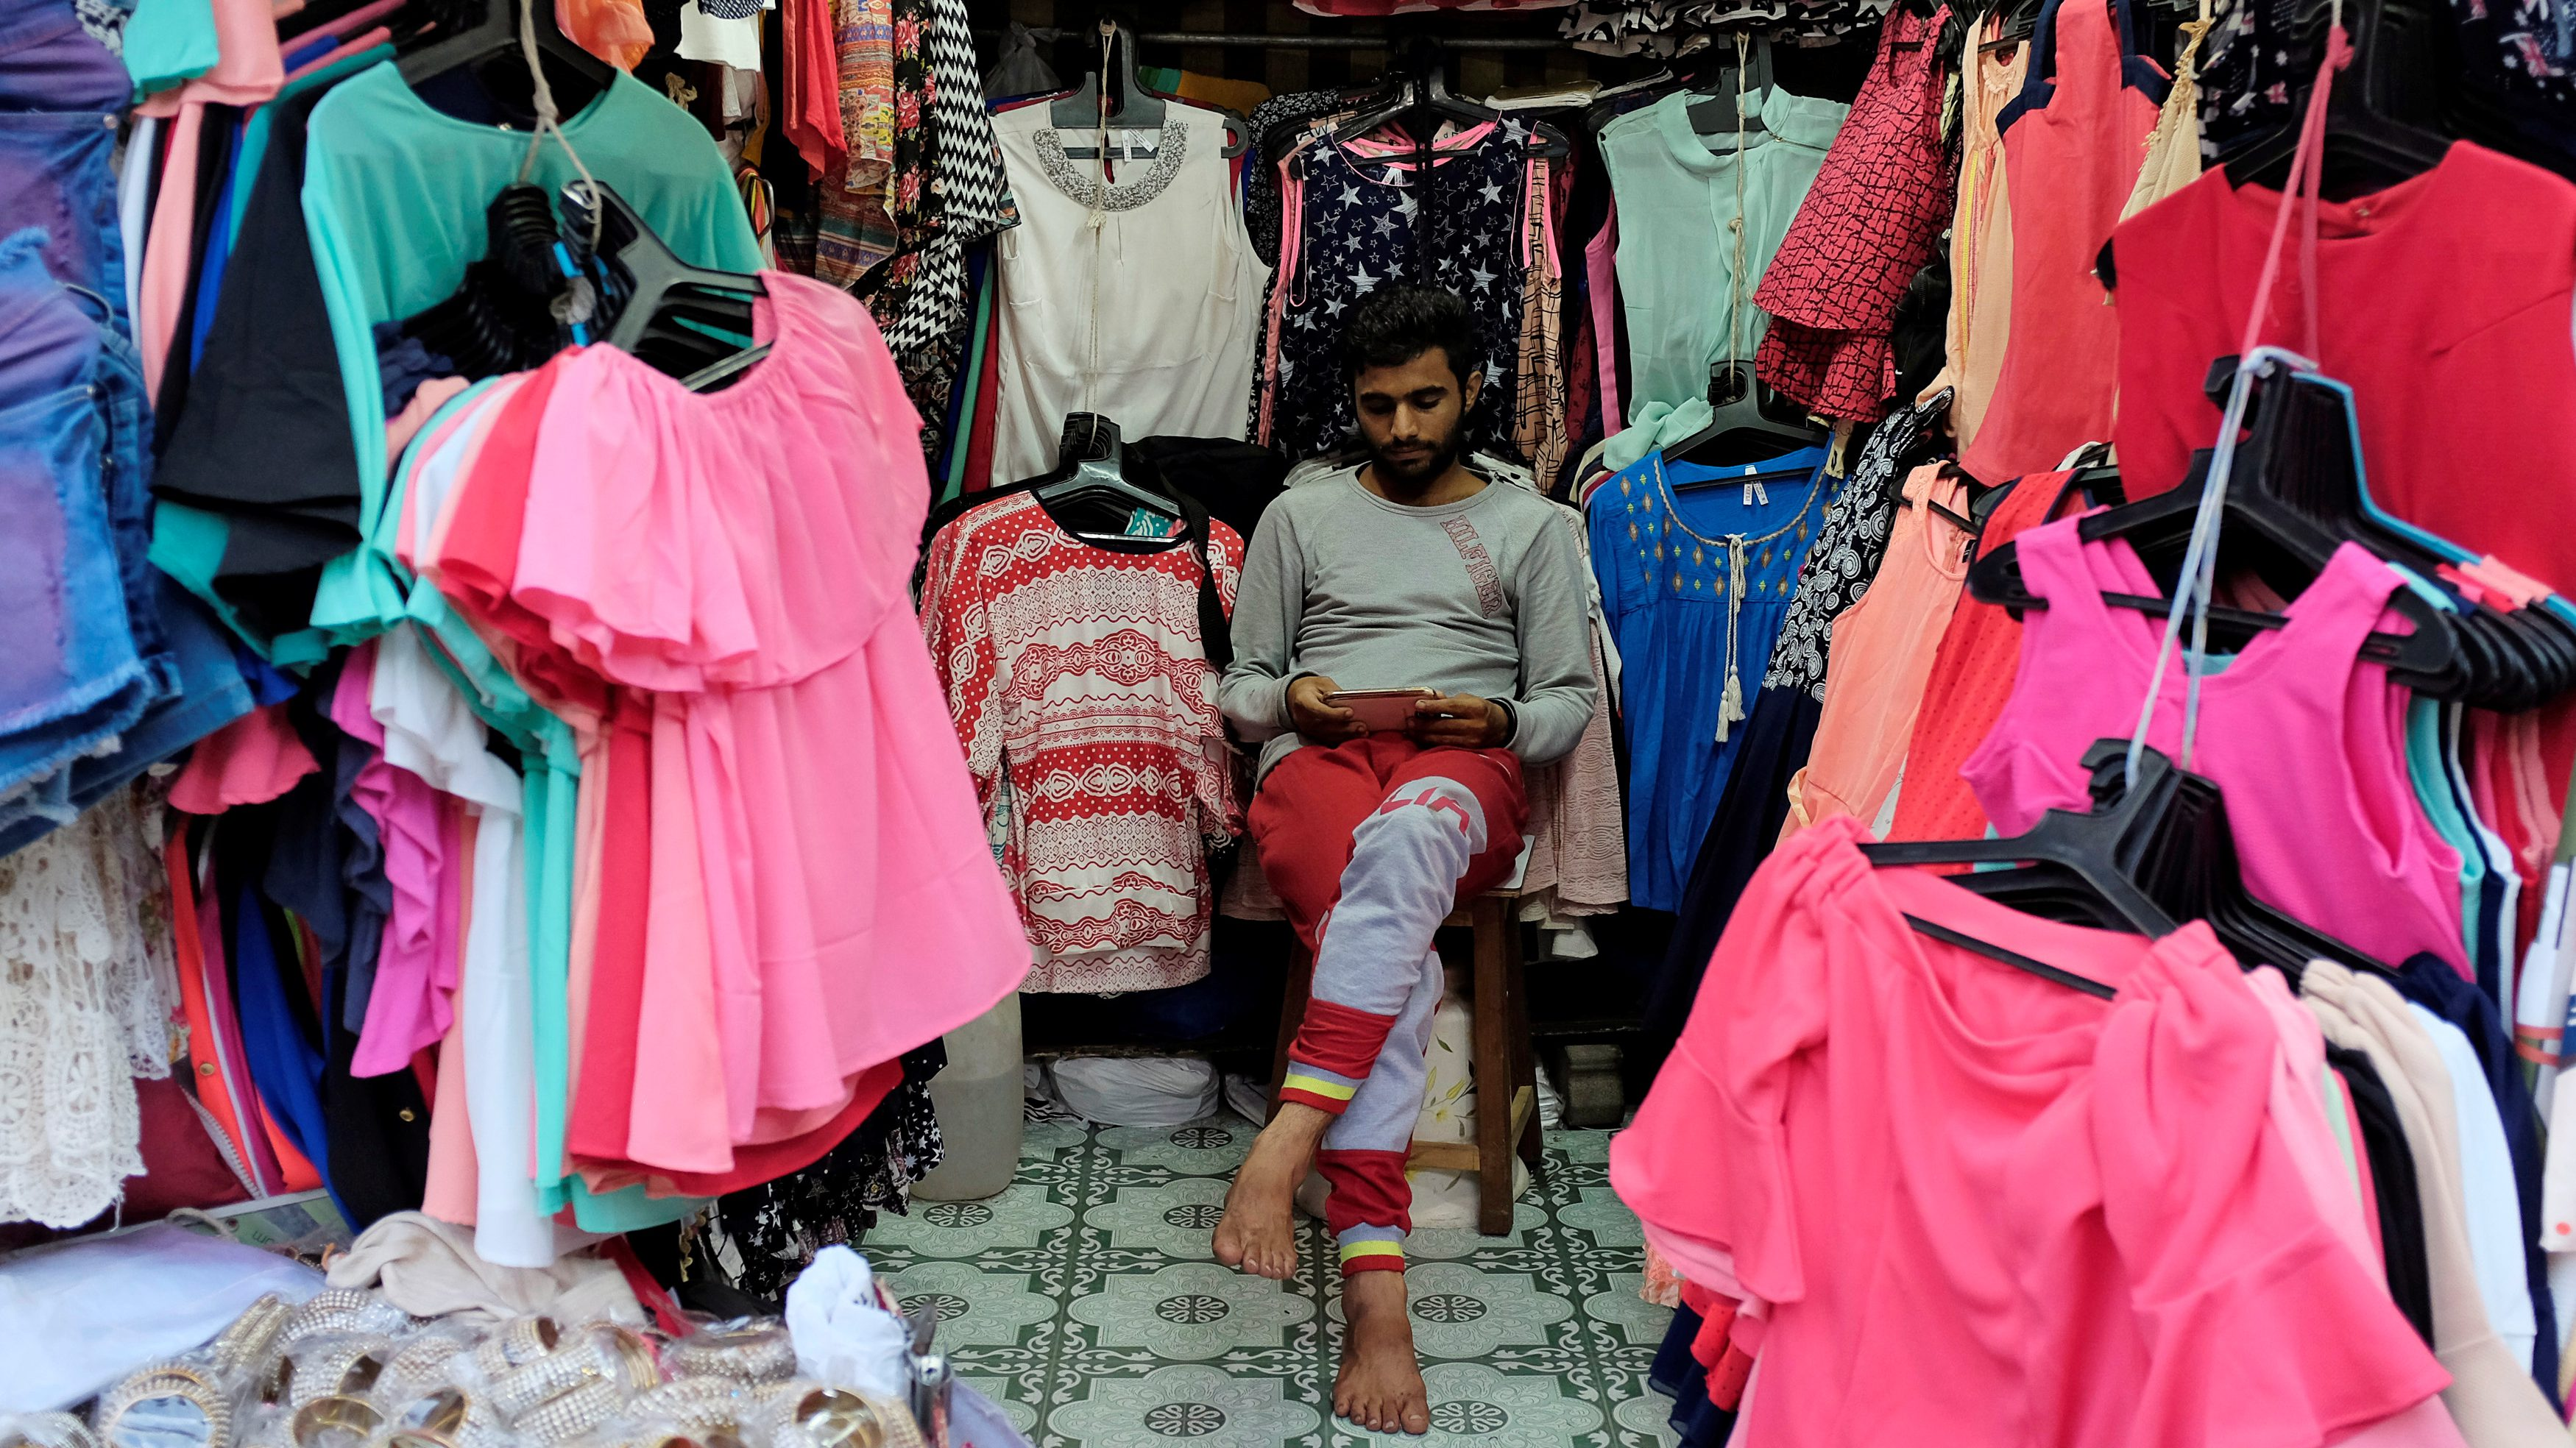 A vendor selling clothes looks at his mobile phone as he waits for customers at a market in Mumbai, India, August 30, 2016. Picture taken August 30, 2016. REUTERS/Danish Siddiqui - RTX2NO6V